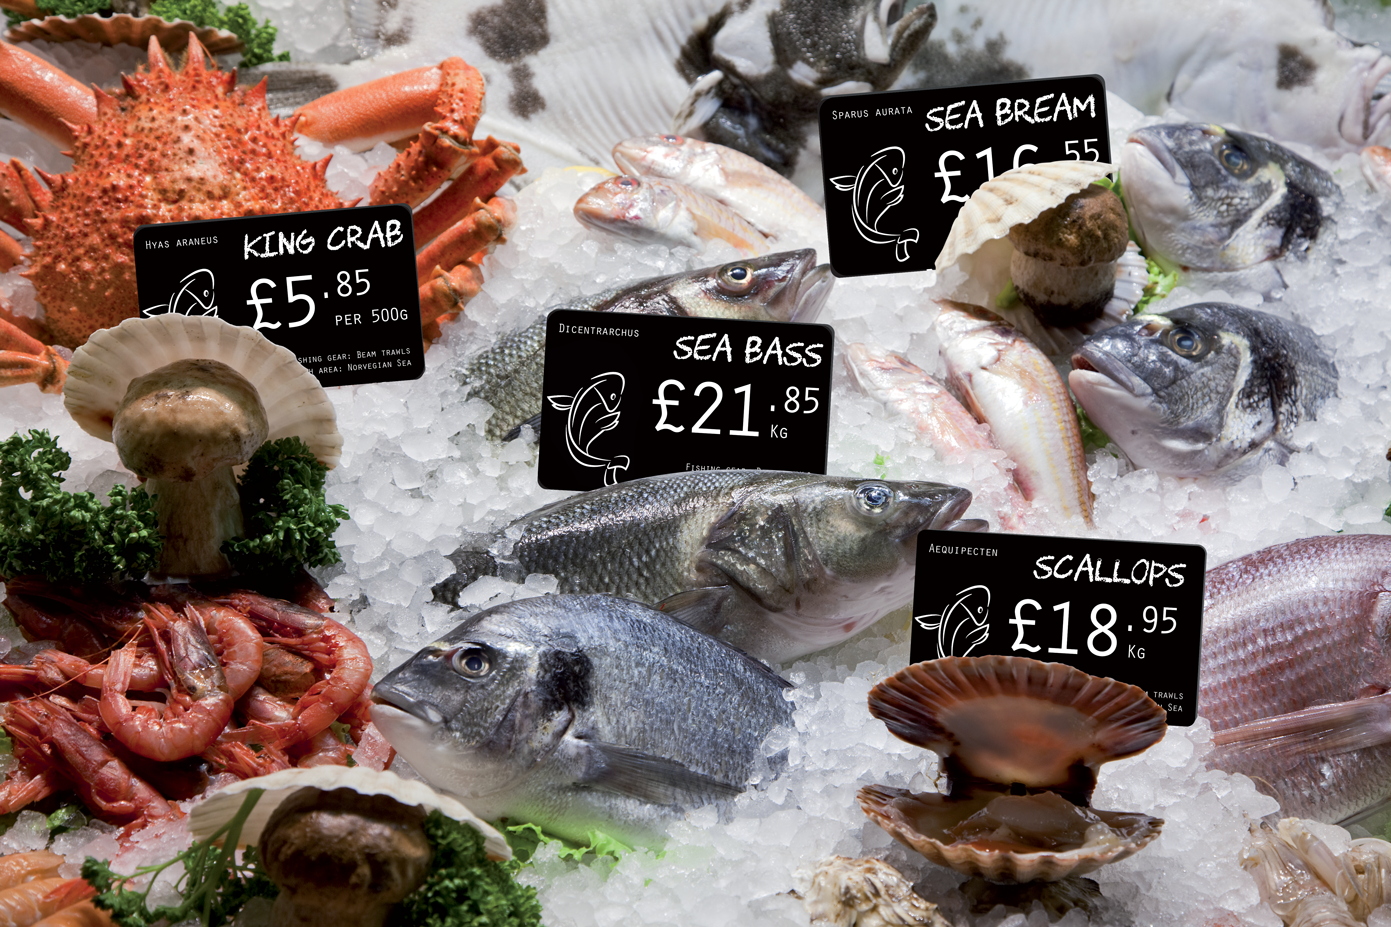 Price tags for fishmongers in situ